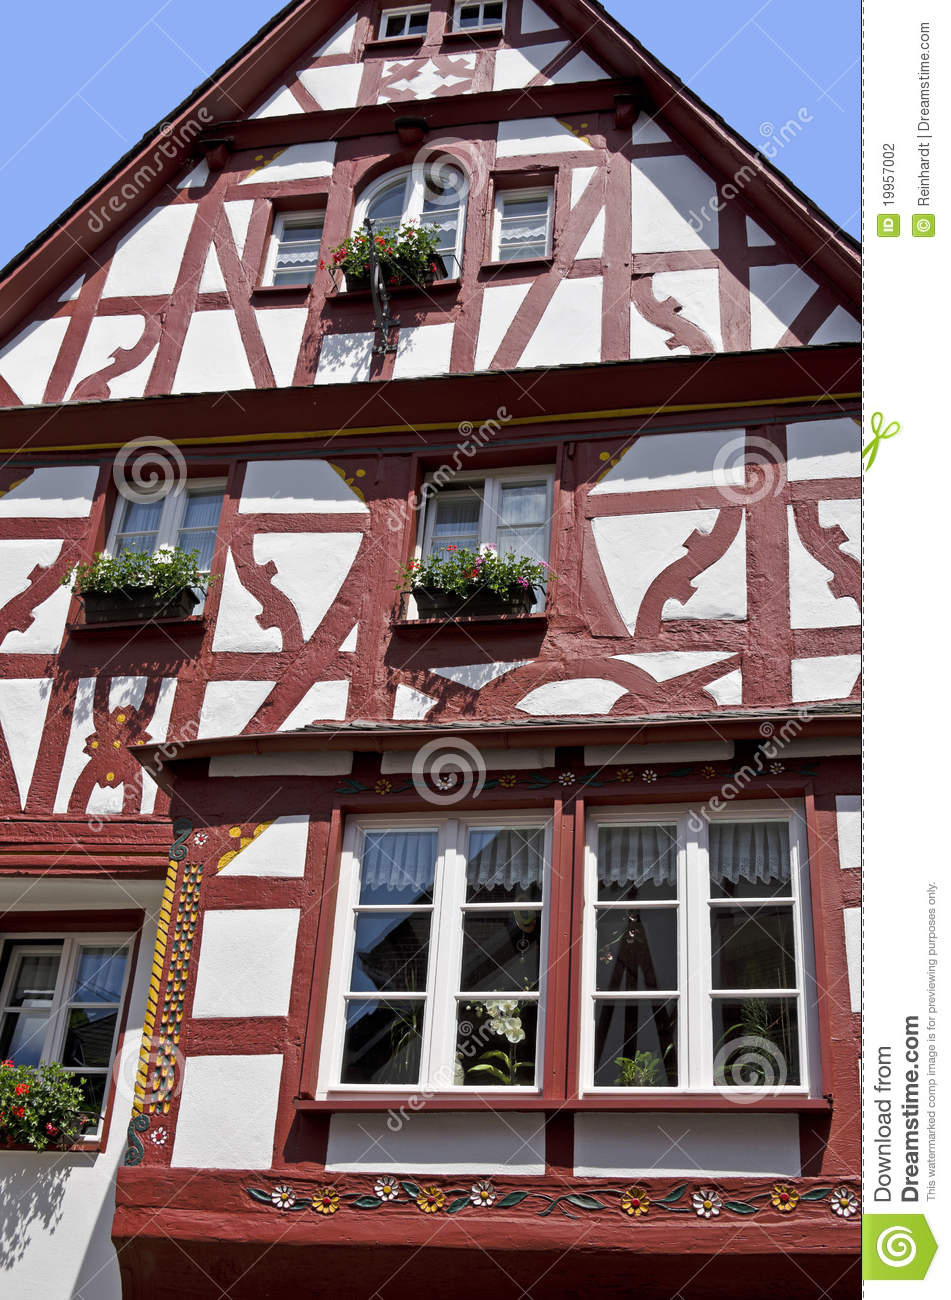 half timbered houses stock photography image 19957002. Black Bedroom Furniture Sets. Home Design Ideas